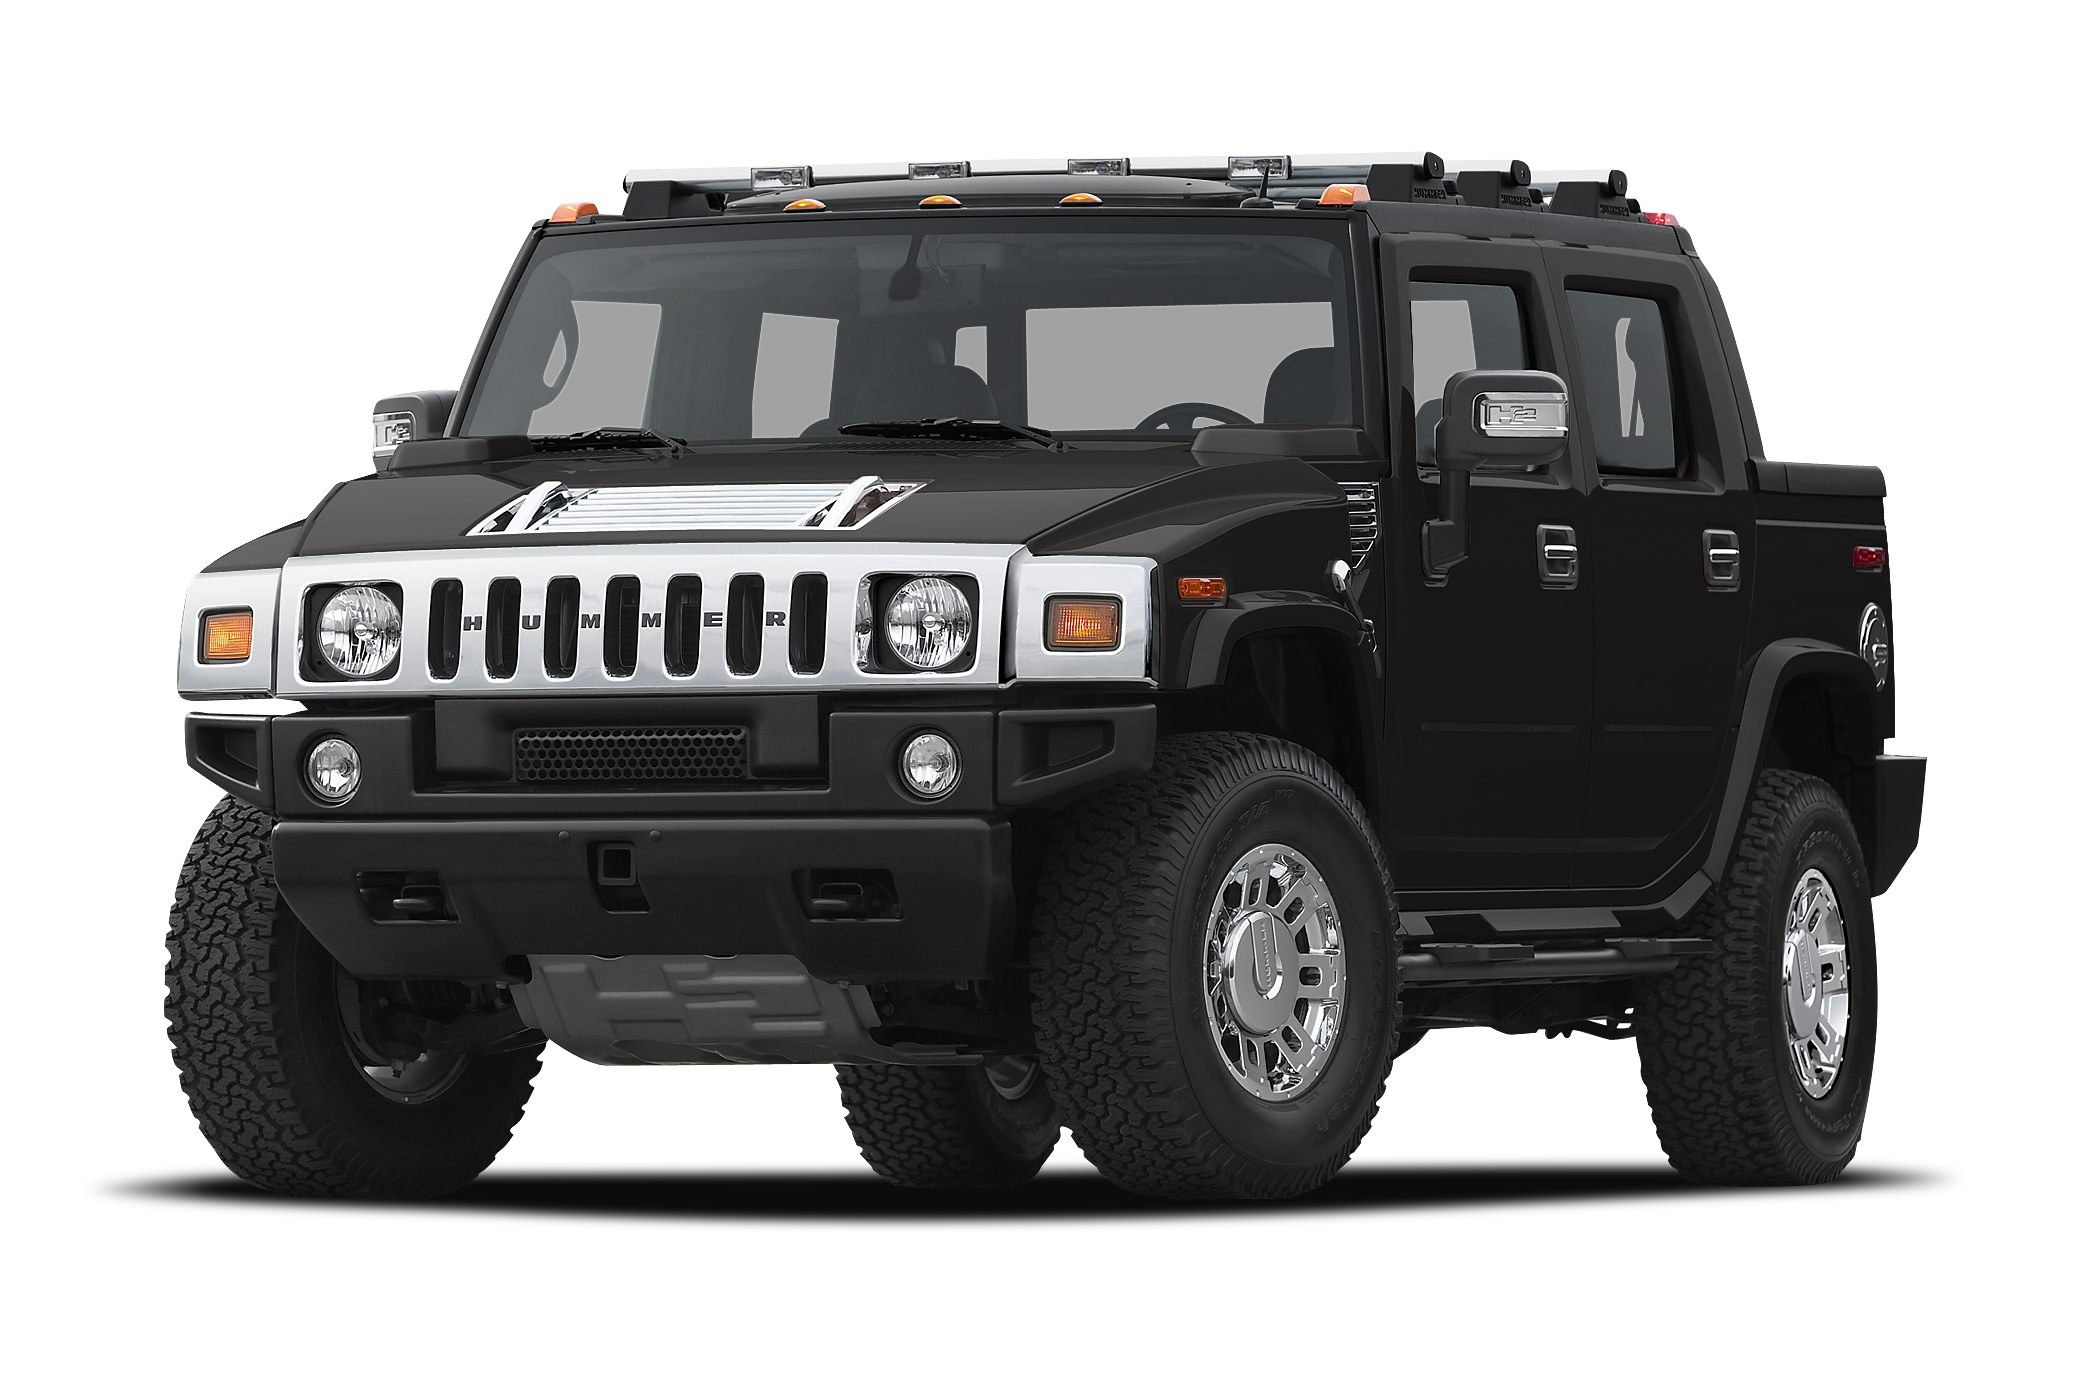 2008 Hummer H2 SUT SUV for sale in Richland for $34,995 with 87,820 miles.